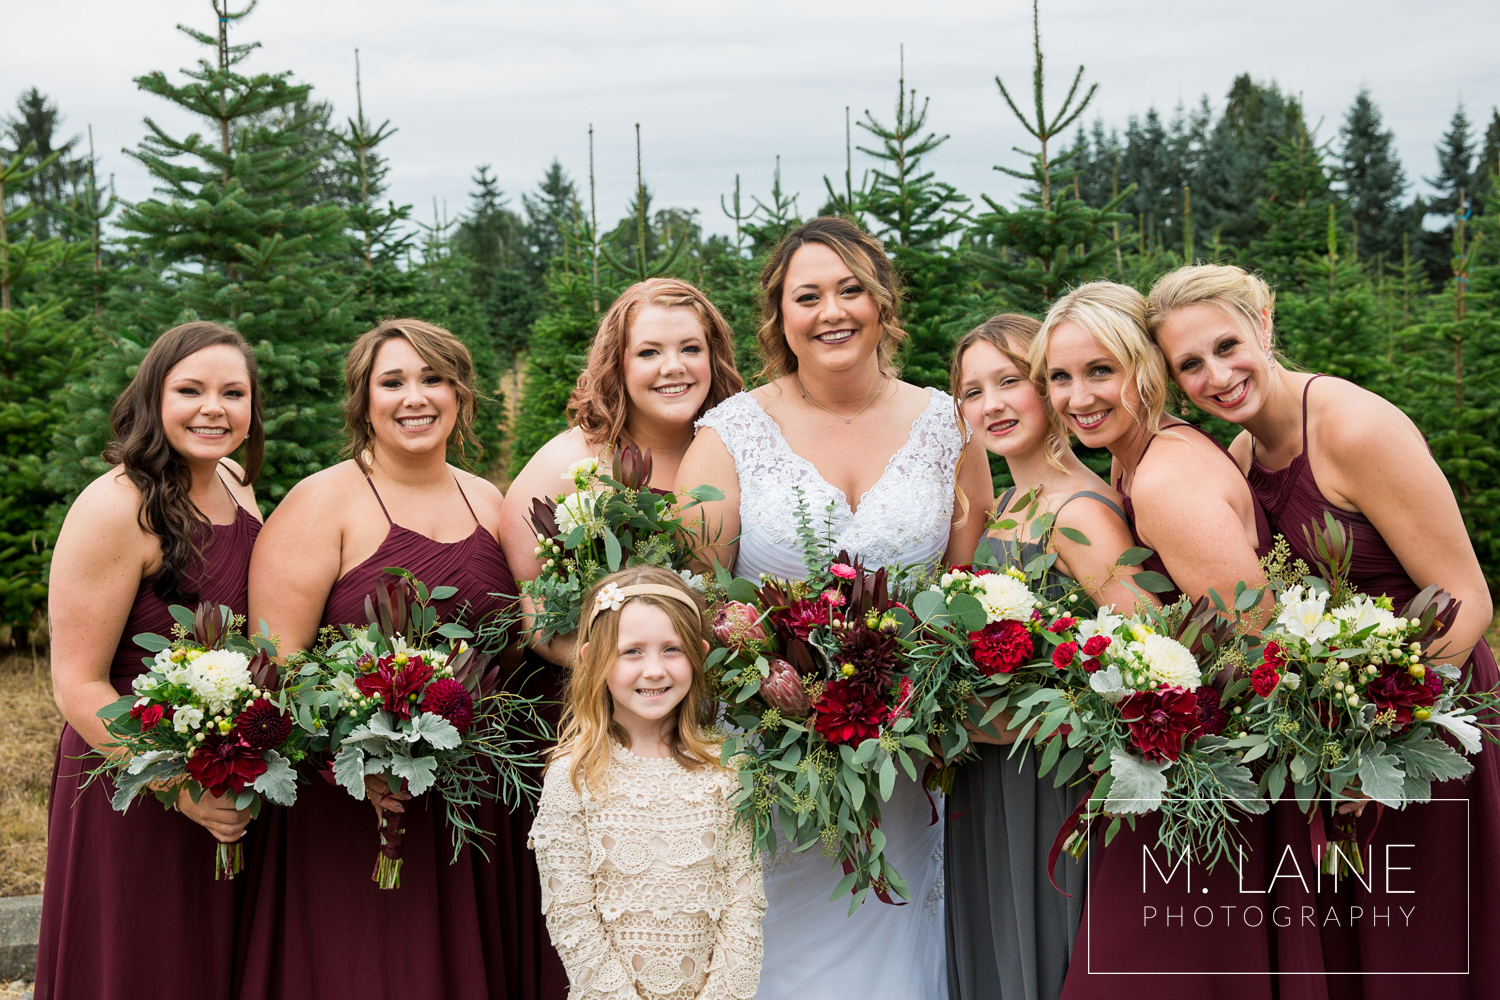 Carnation-Tree-Farm-Wedding-Photographer-3538.jpg